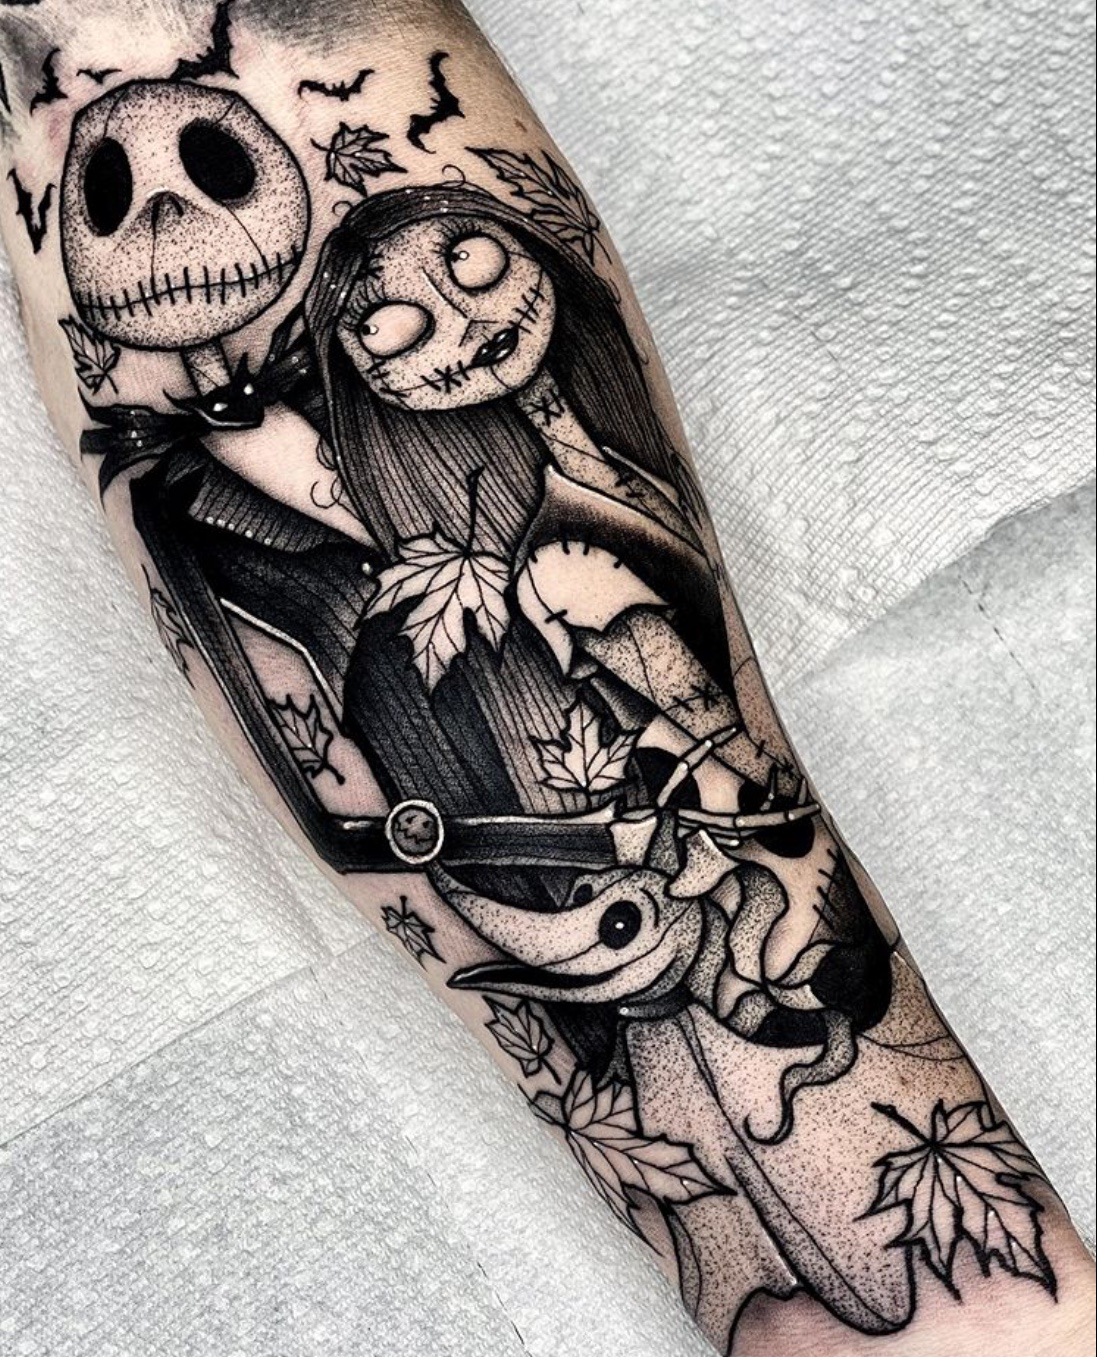 Different tattoo designs and ideas might be appealing to different people based on what makes them unique. 50 Spooky Halloween Tattoo Ideas The Xo Factor